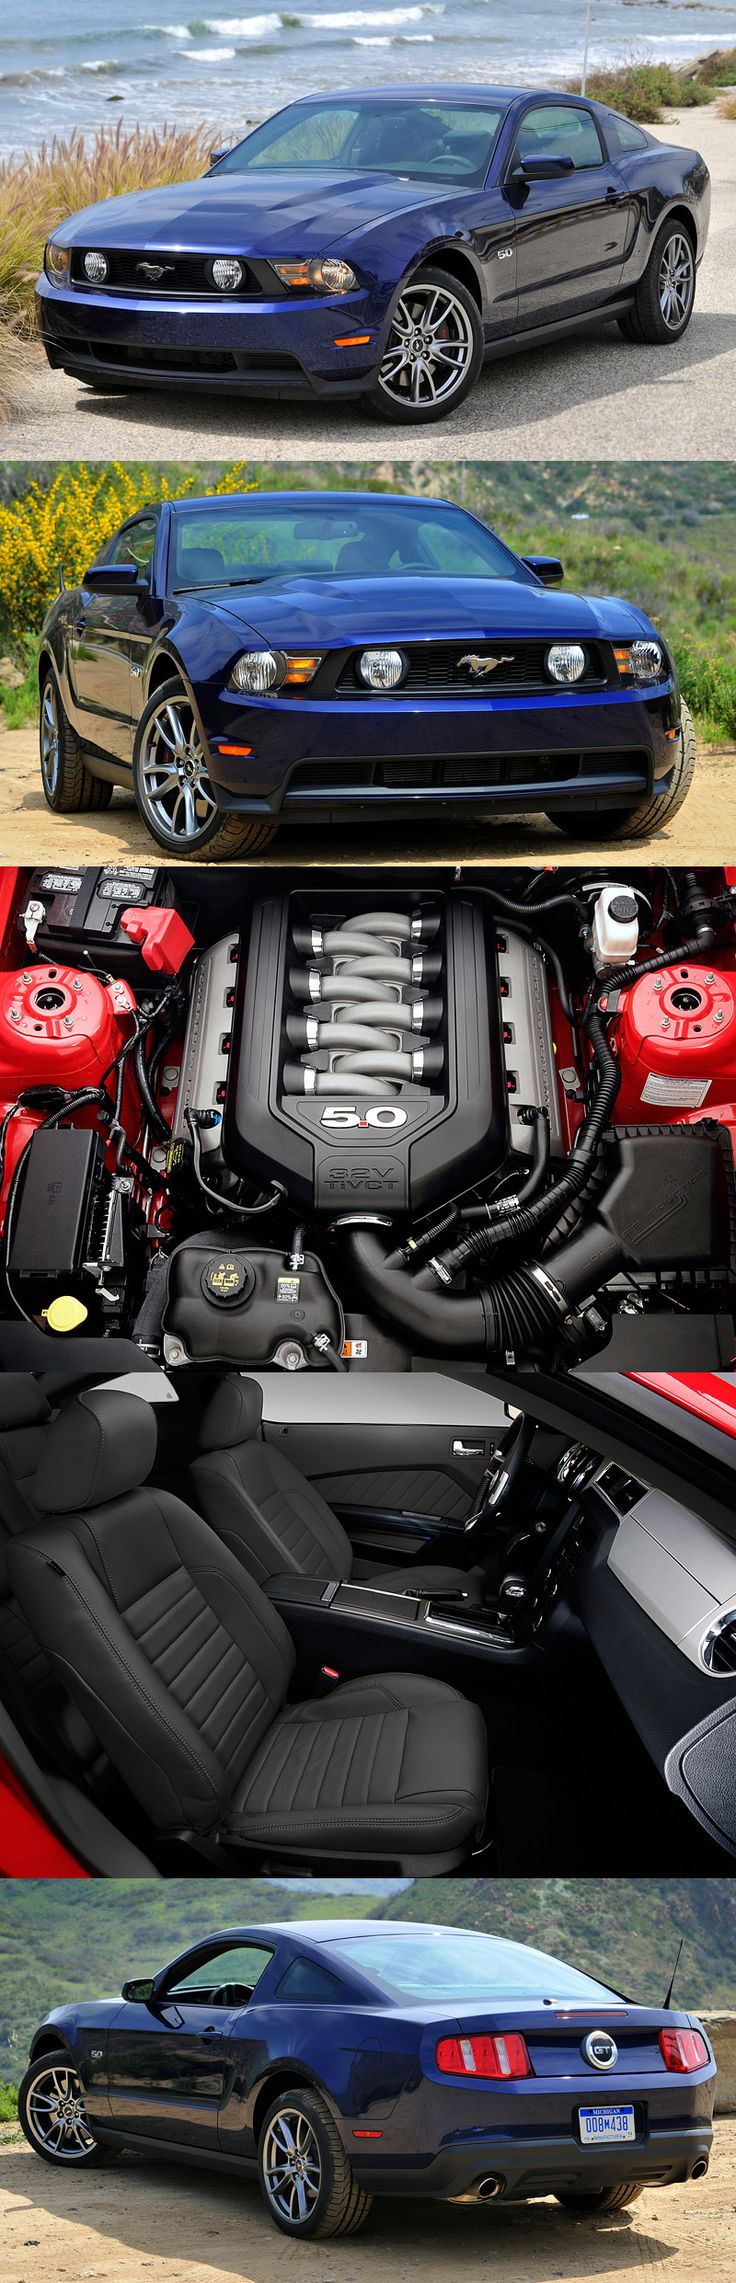 The new #Ford #Mustang 5.0 #GT is one hell of an #engine, and for hell of a car http://www.fordenginesforsale.co.uk/